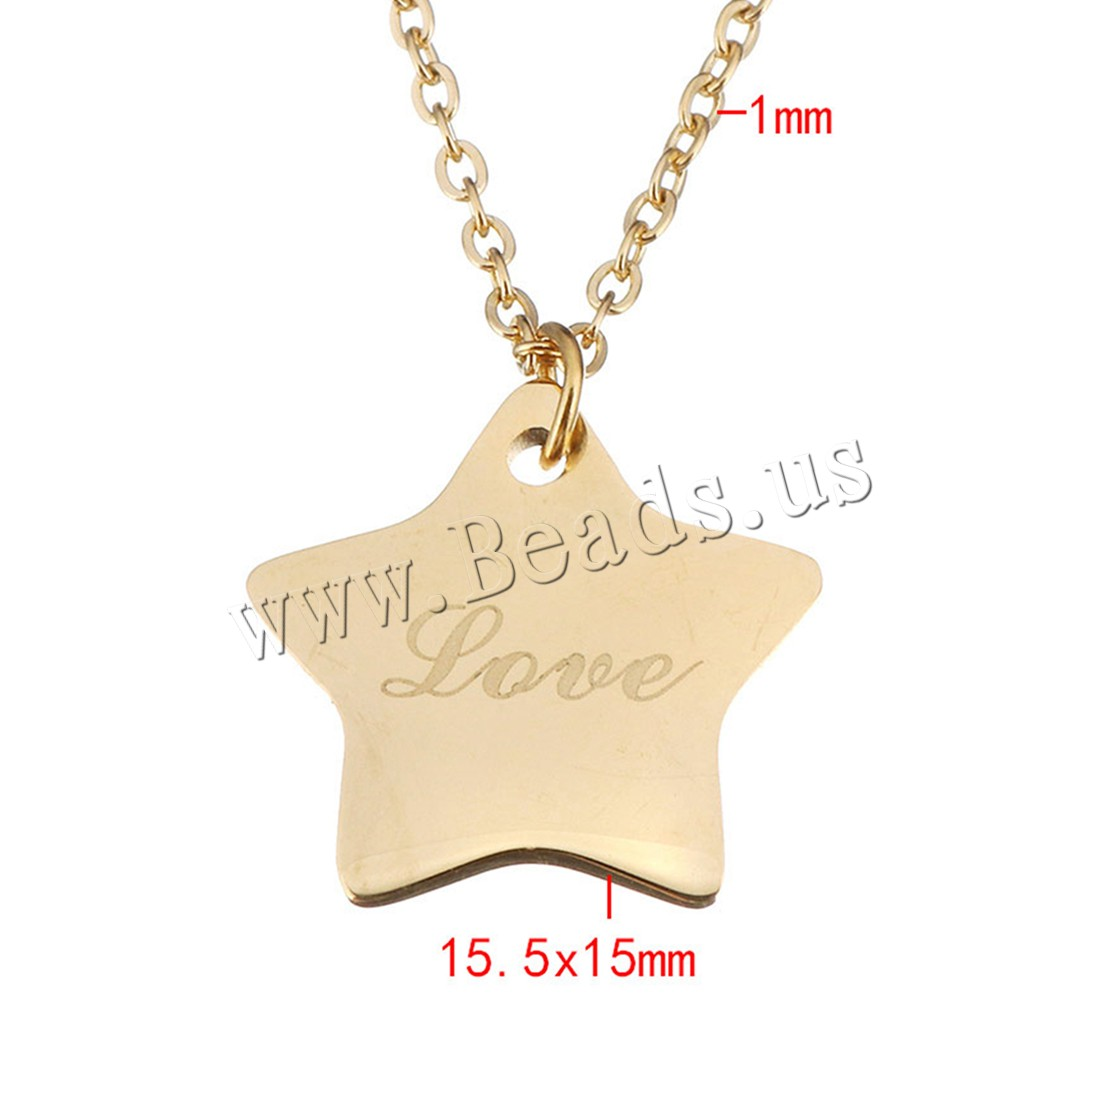 Buy Stainless Steel Jewelry Necklace Star word love gold color plated oval chain & woman 15.5x15mm 1mm Sold Per Approx 18 Inch Strand